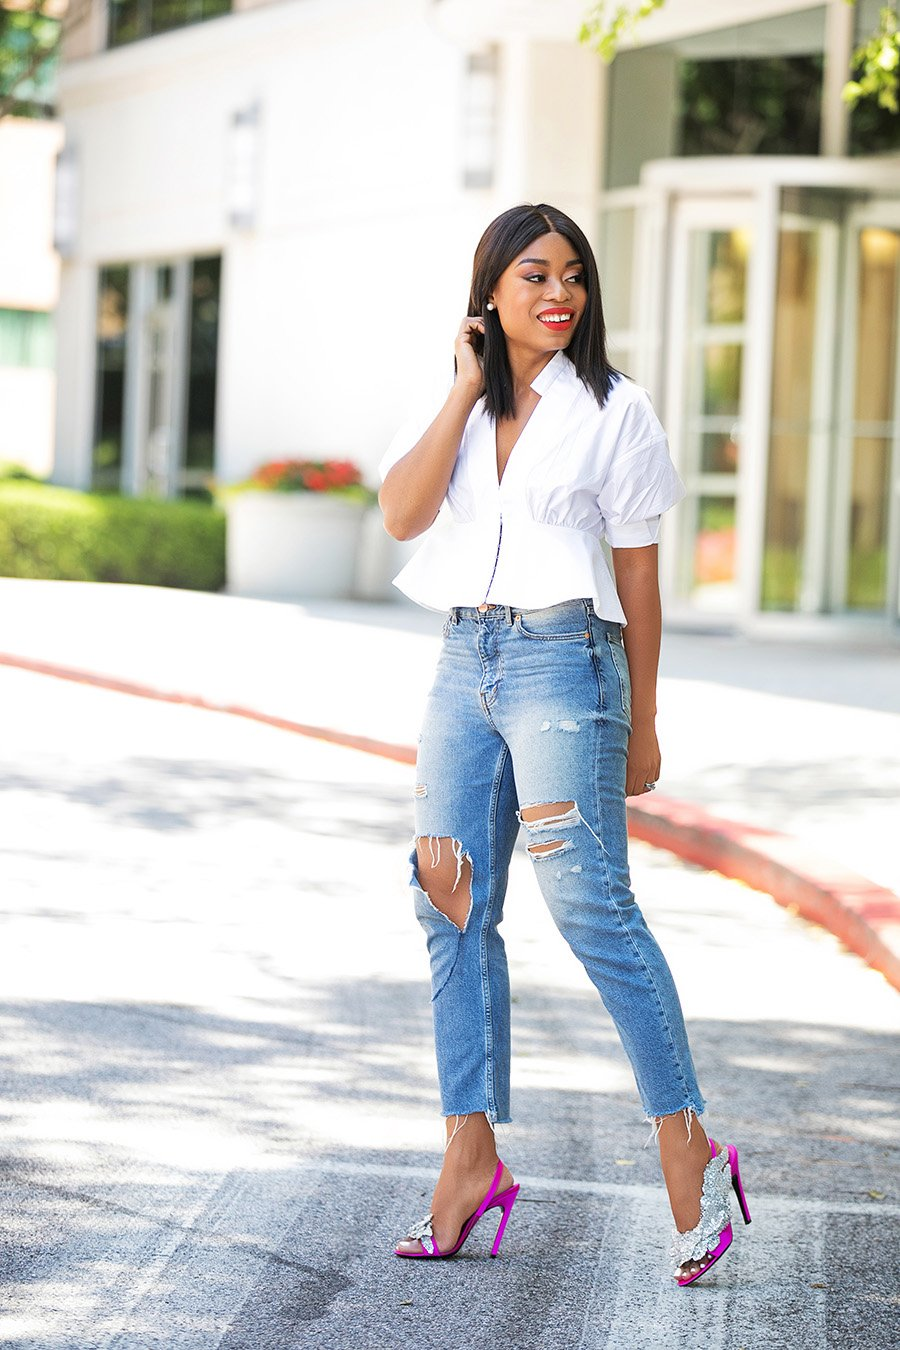 Stella-adewunmi-of-jadore-fashion-shares-3-tips-to-spice-up-your-jeans-now